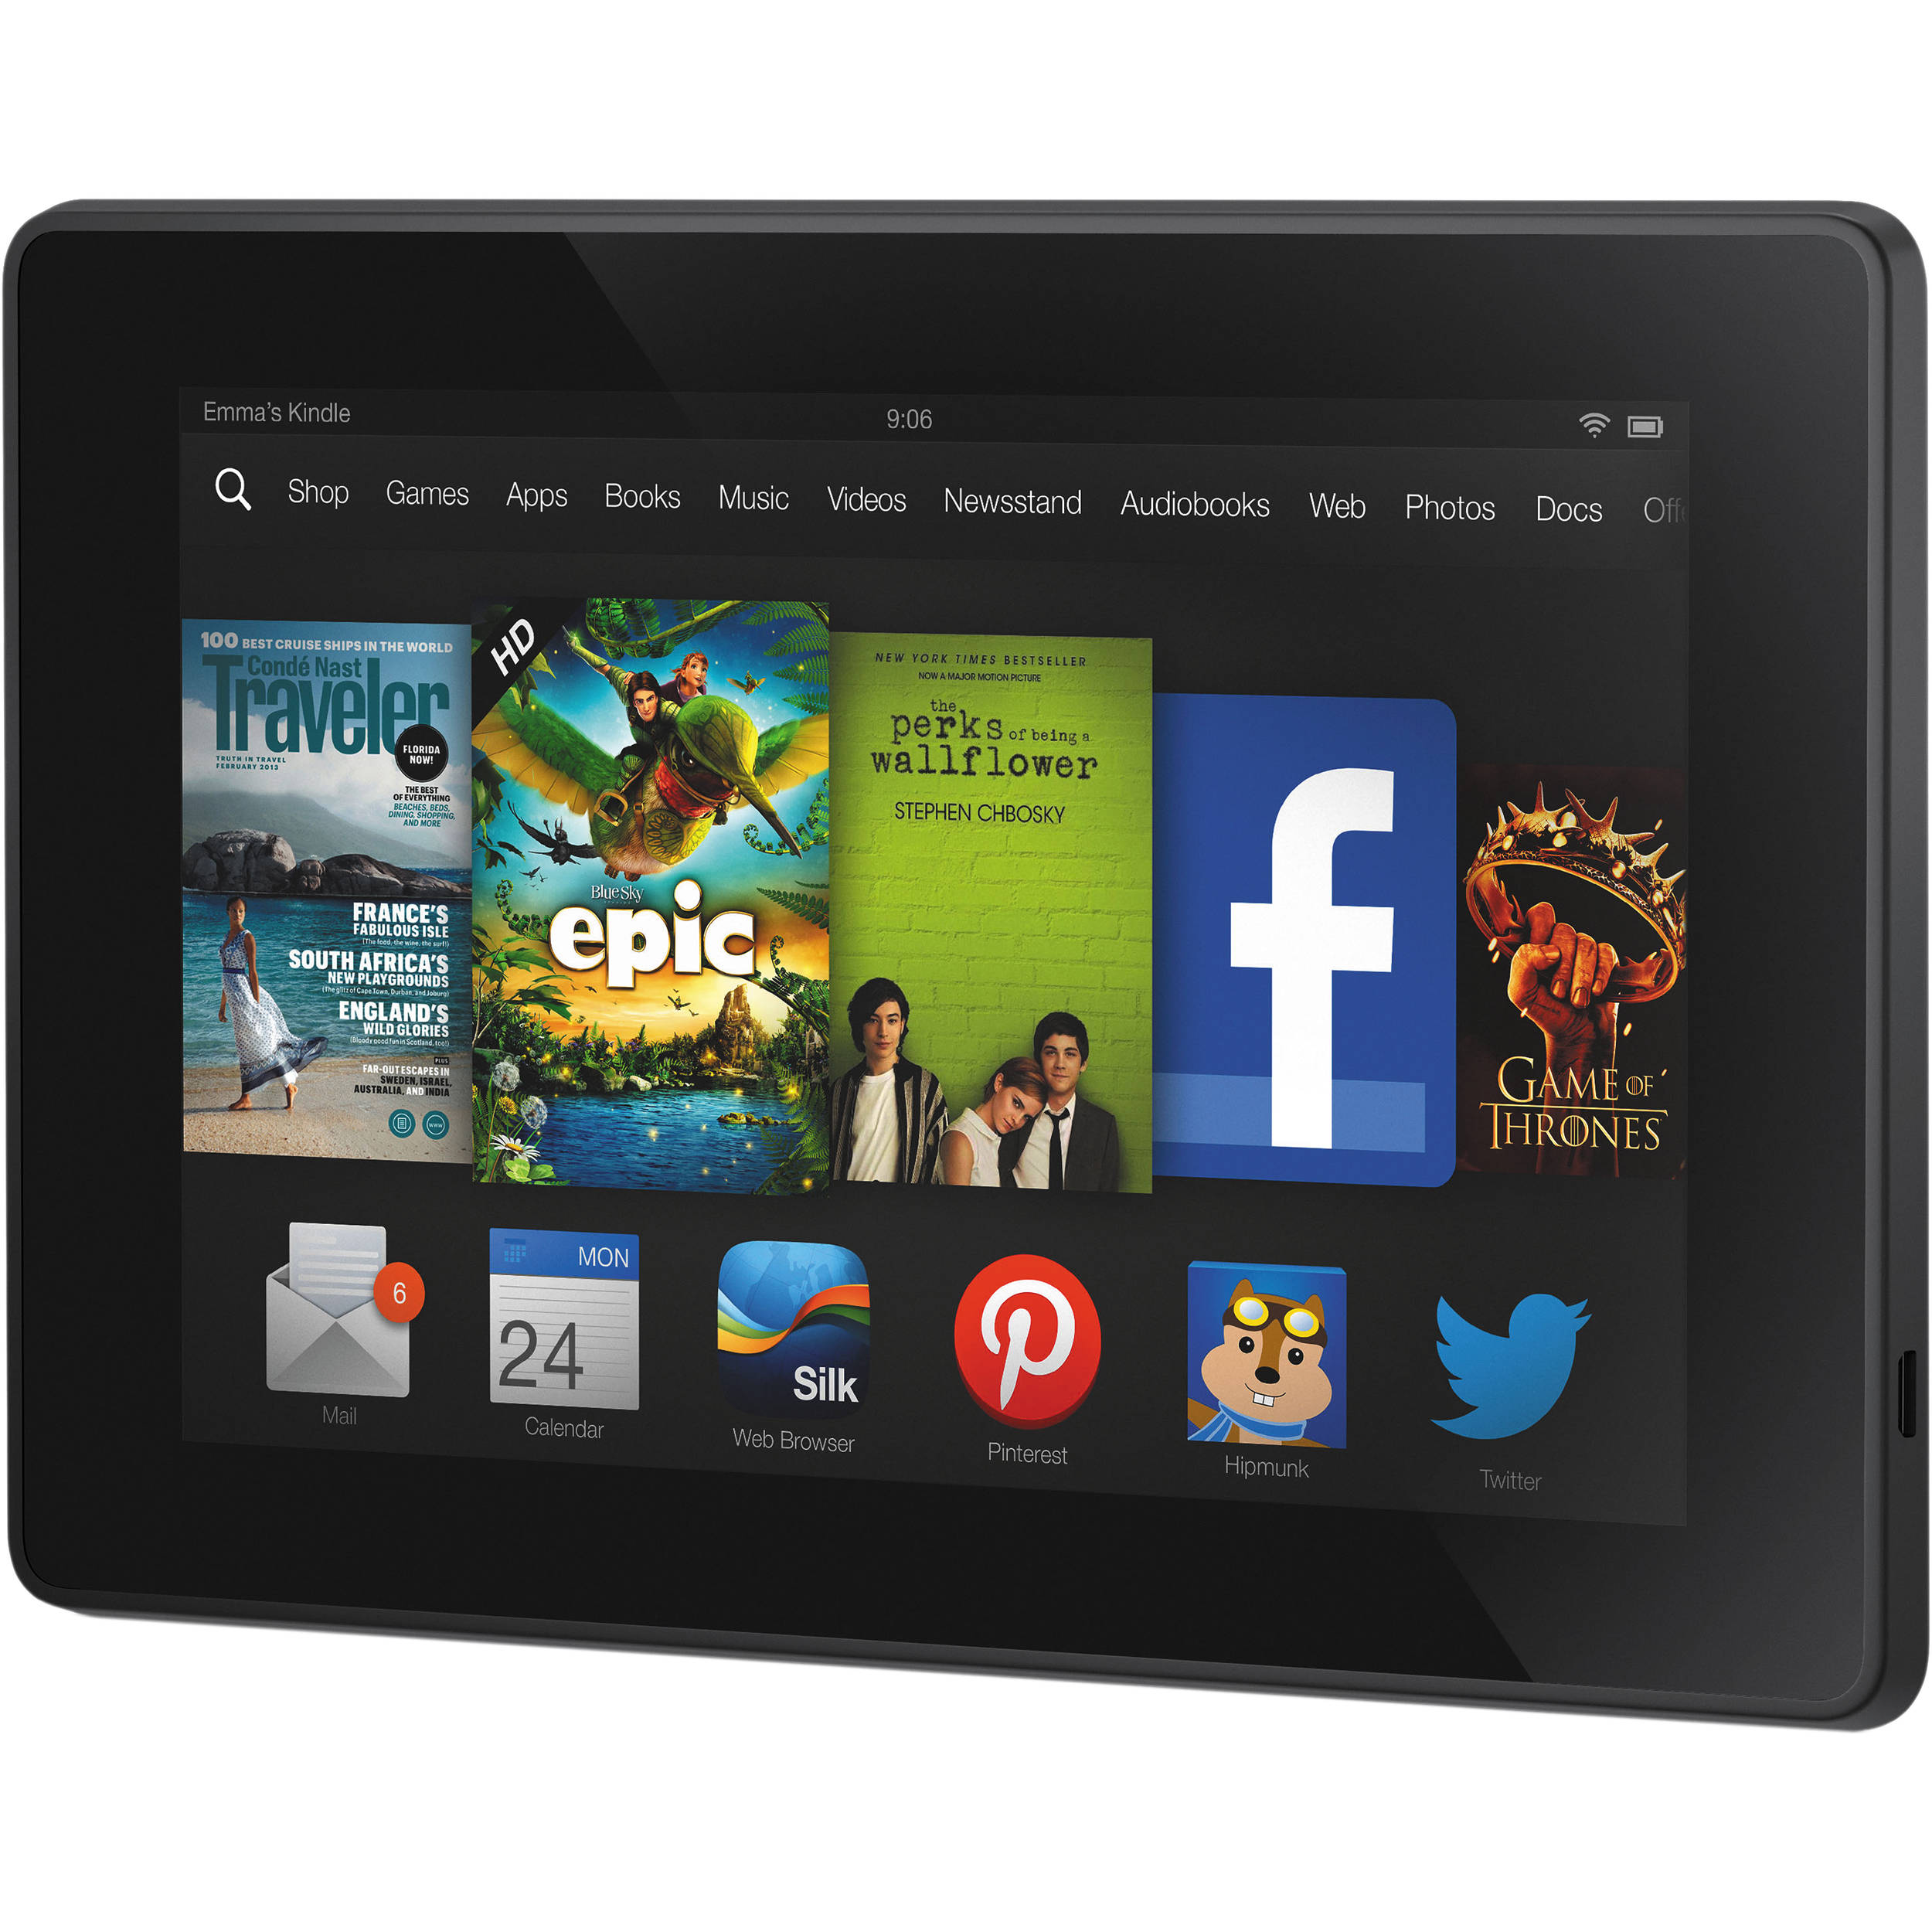 kindle 16gb fire hd 7 tablet b00c5w16b8 b h photo video rh bhphotovideo com kindle fire hdx 7 user manual pdf kindle fire hd 7 manual español pdf